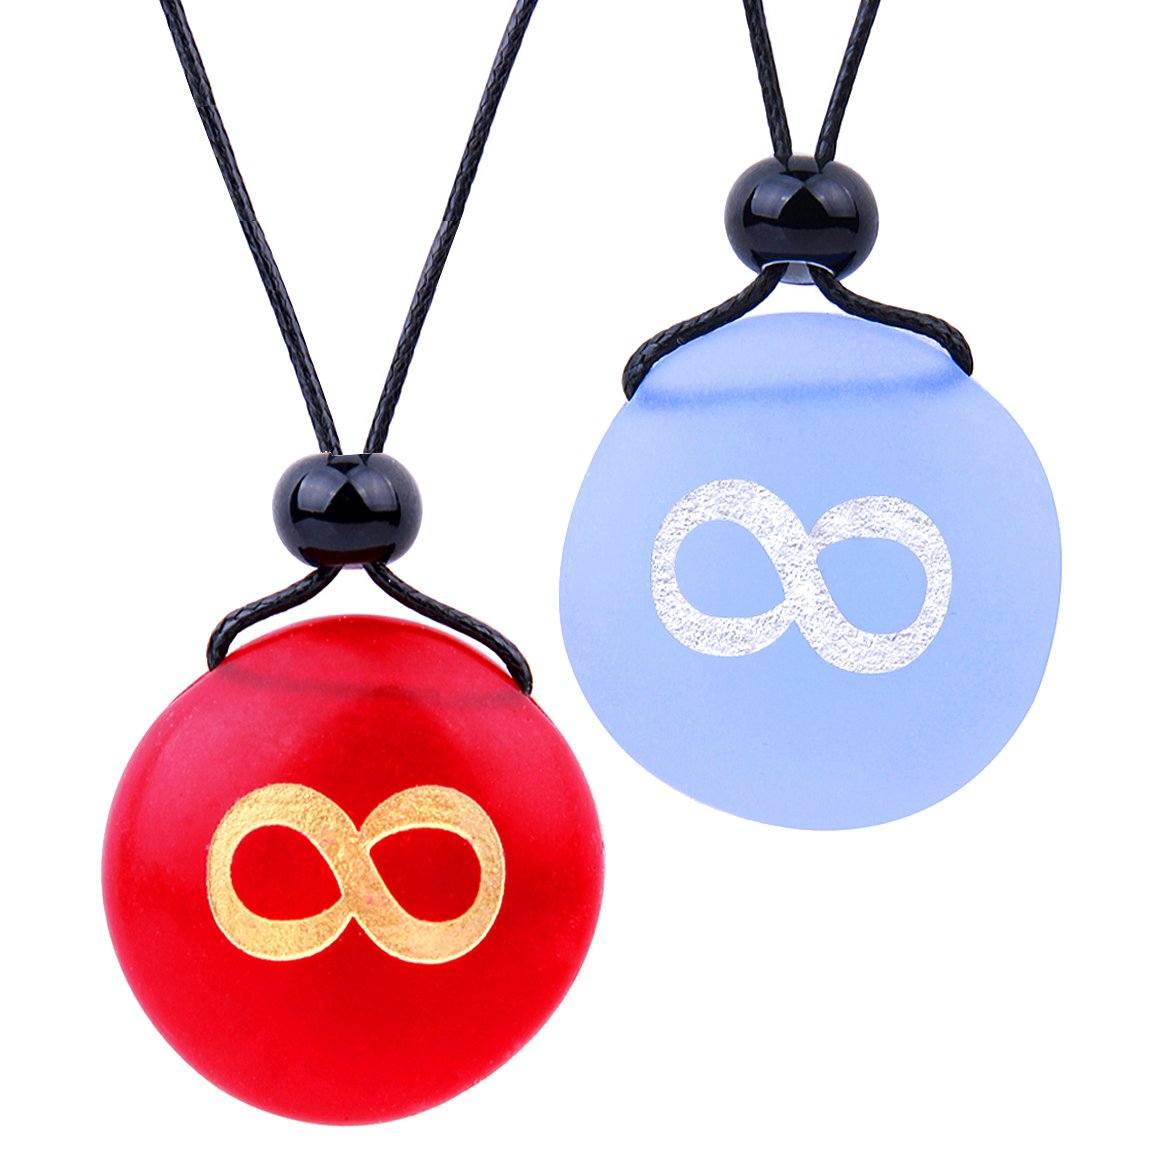 Frosted Sea Glass Stones Infinity Eternity Energy Love Couples BFF Set Amulets Sky Blue Red Necklaces